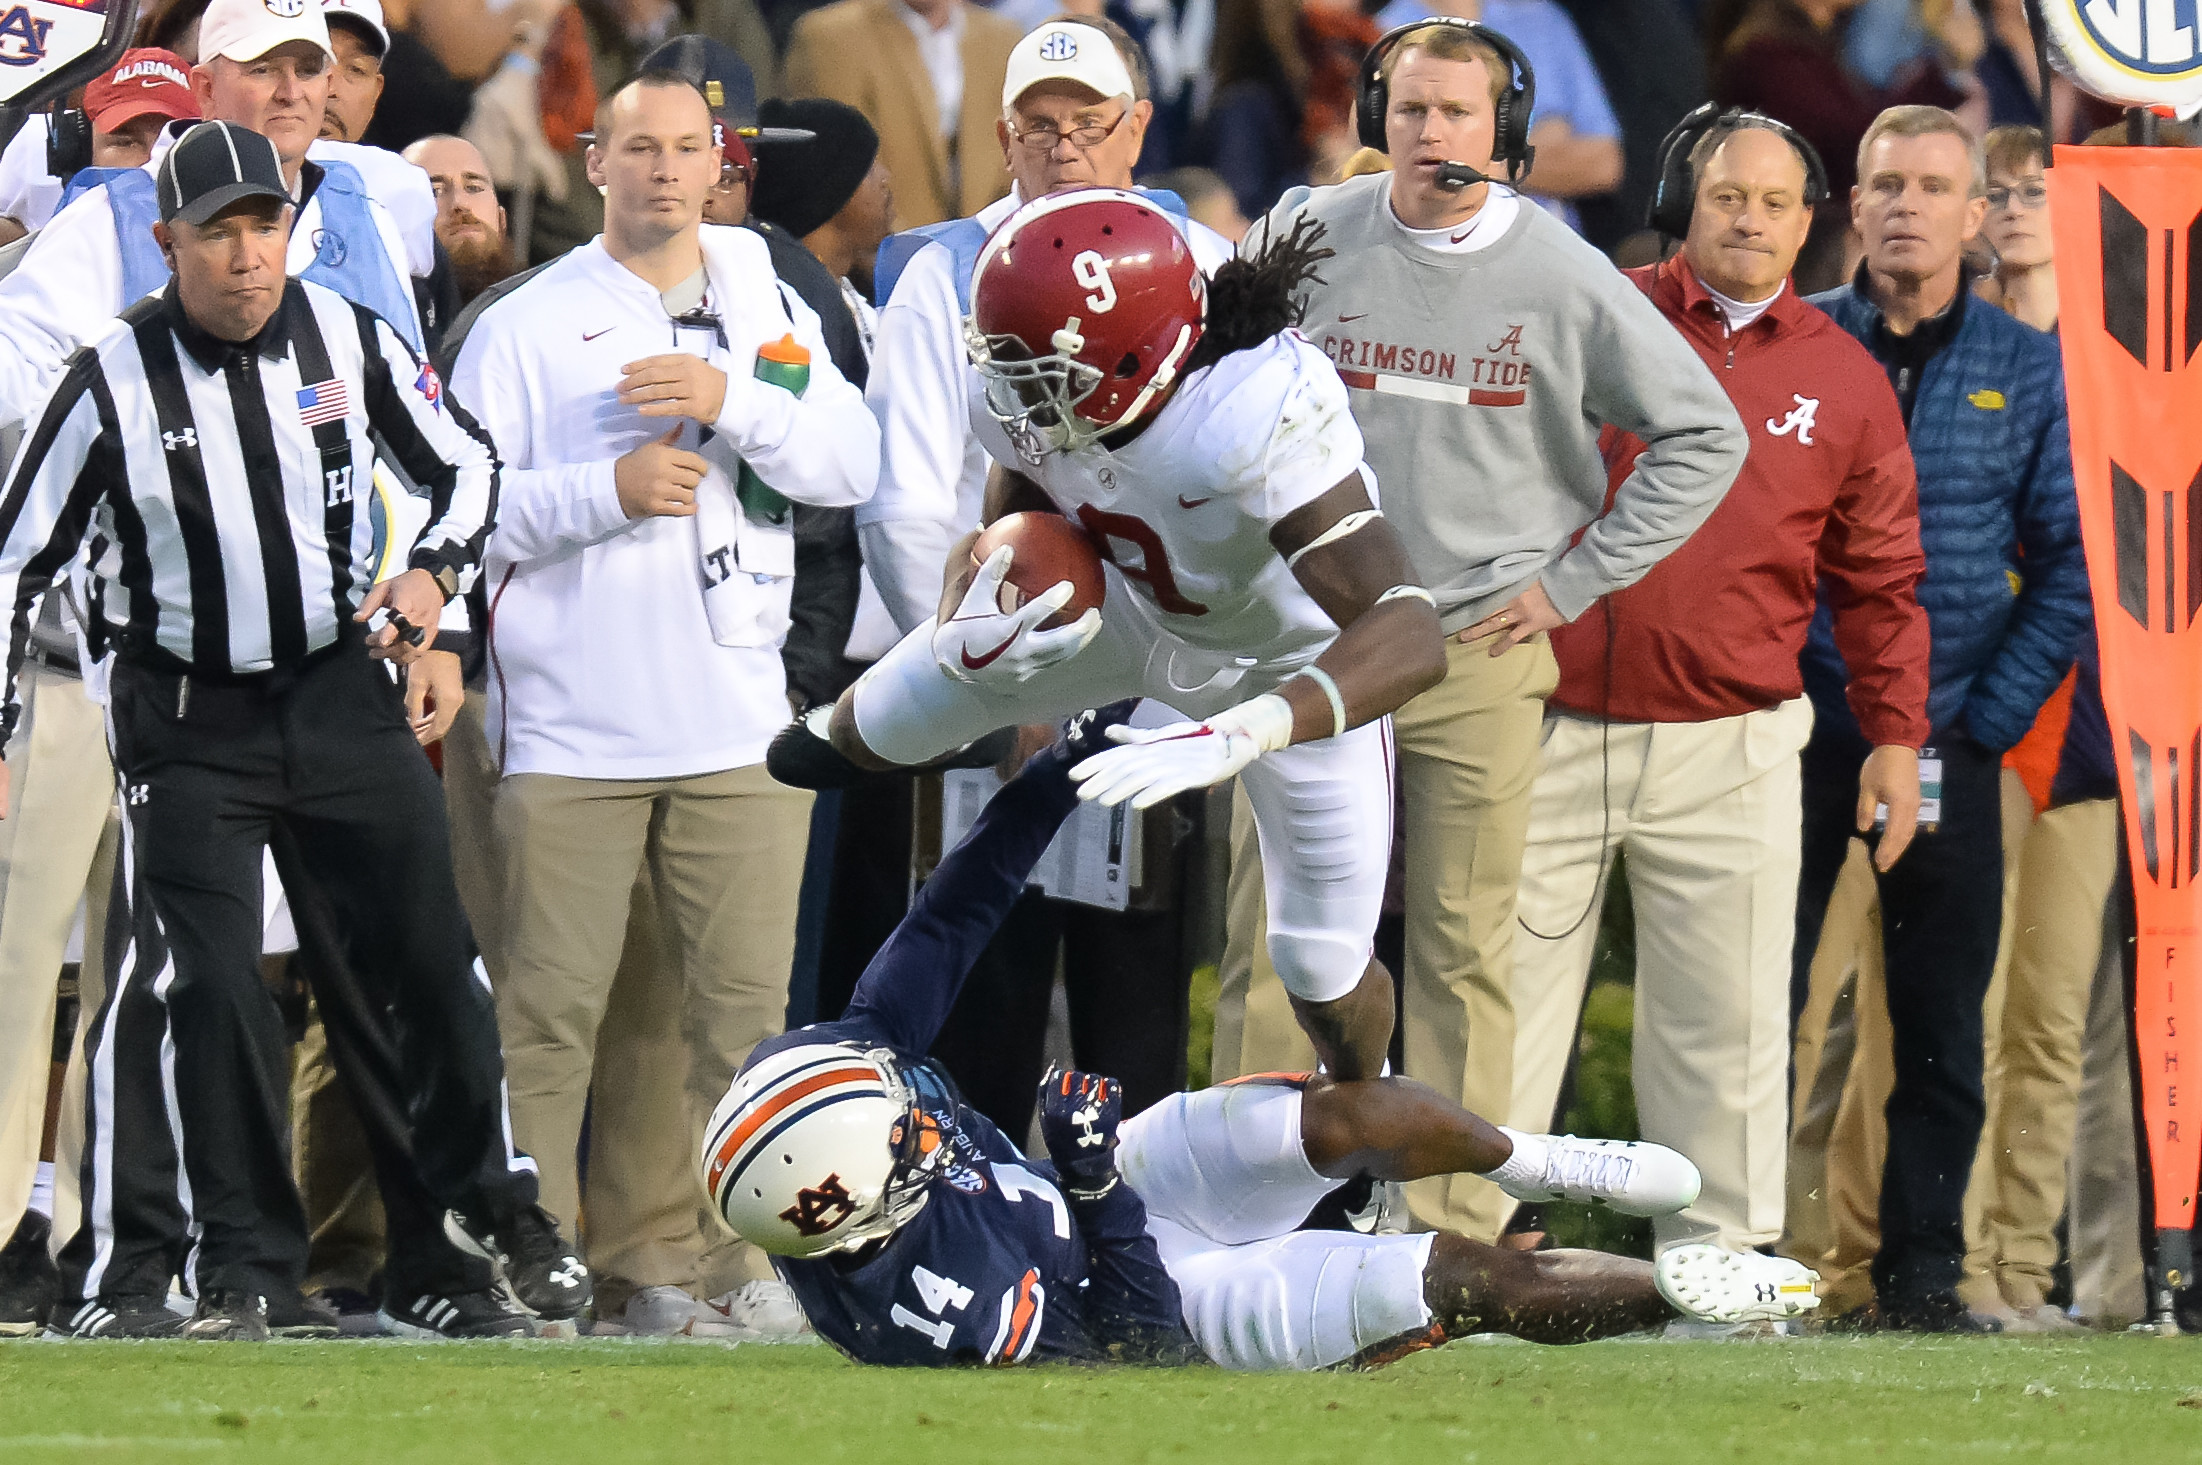 Alabama Crimson Tide running back Bo Scarbrough (9) is tackled by Auburn Tigers defensive back Stephen Roberts (14) during the second half of Saturday's game, at Jordan-Hare Stadium.